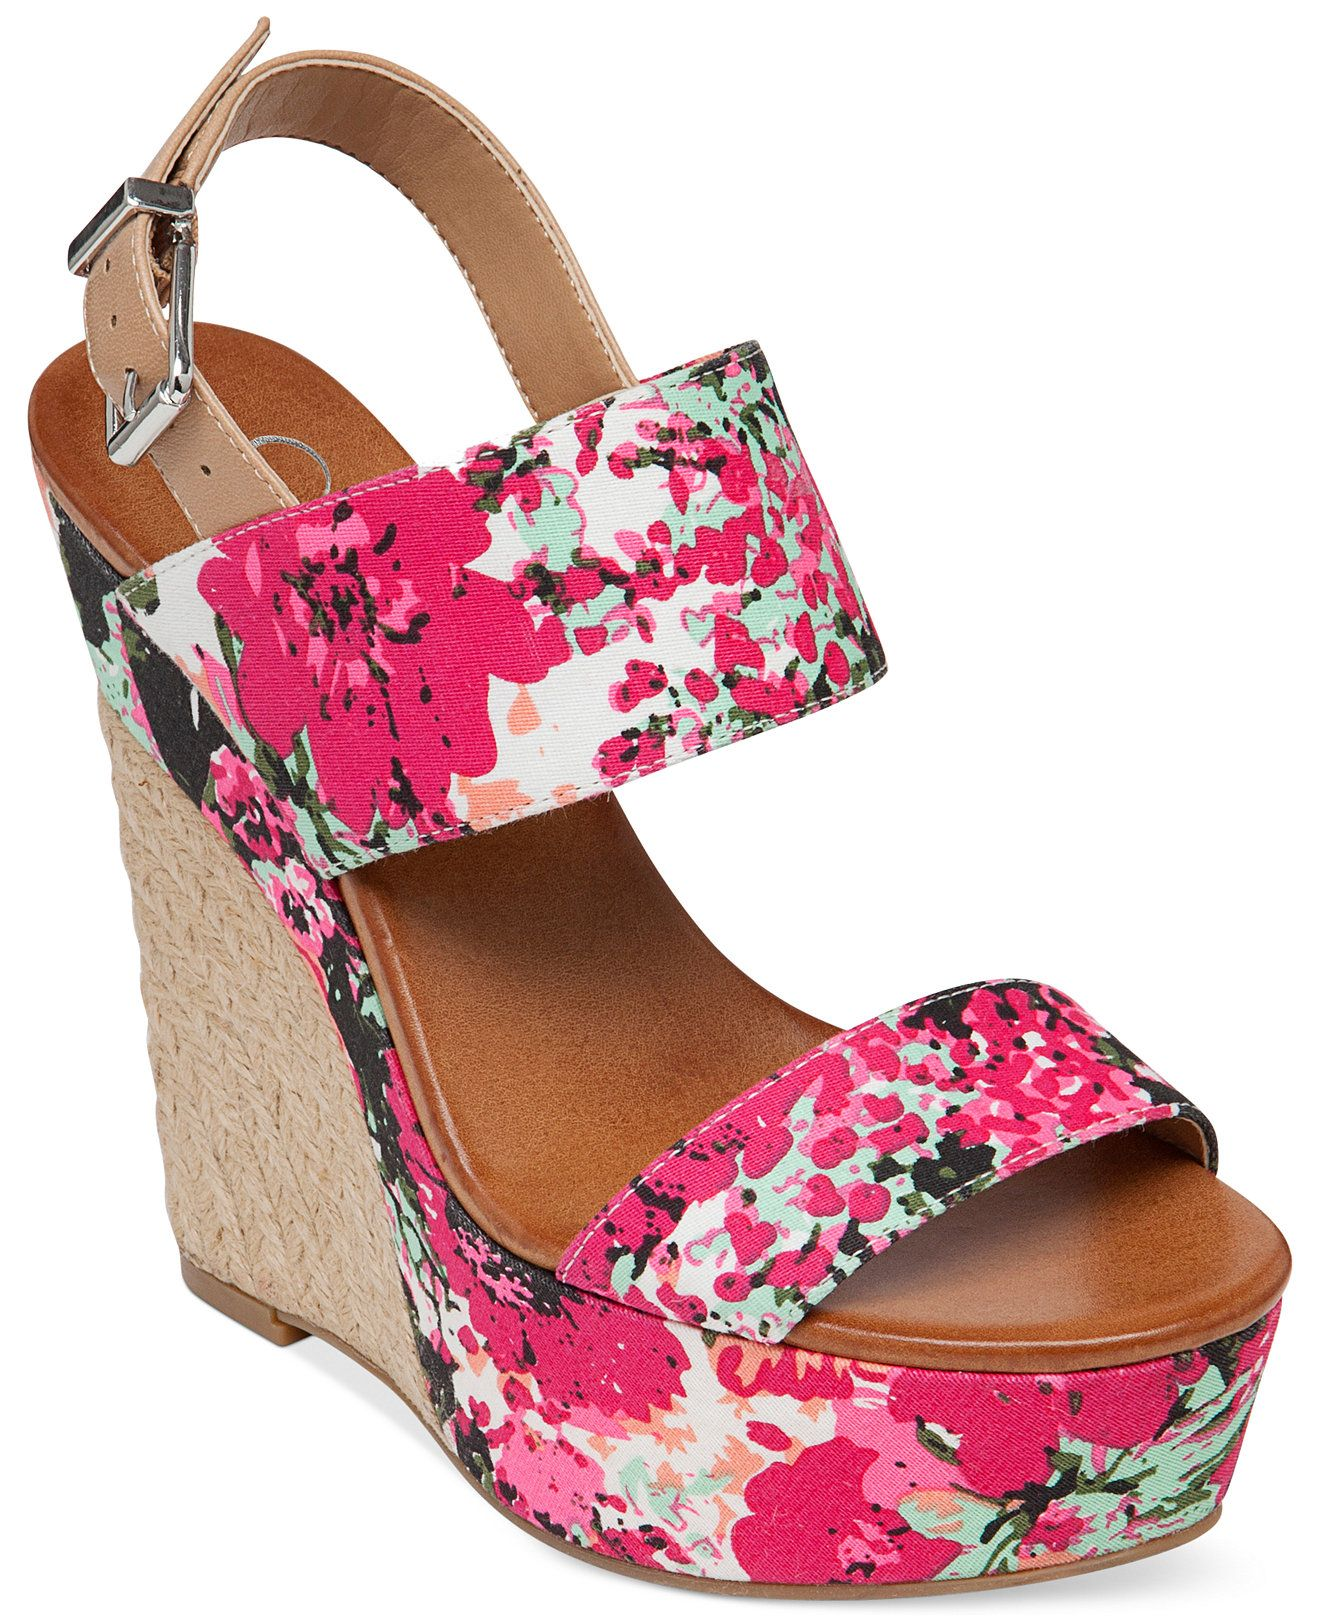 Jessica Simpson Anika Espadrille Platform Wedge Sandals - Espadrilles - Shoes - Macy's